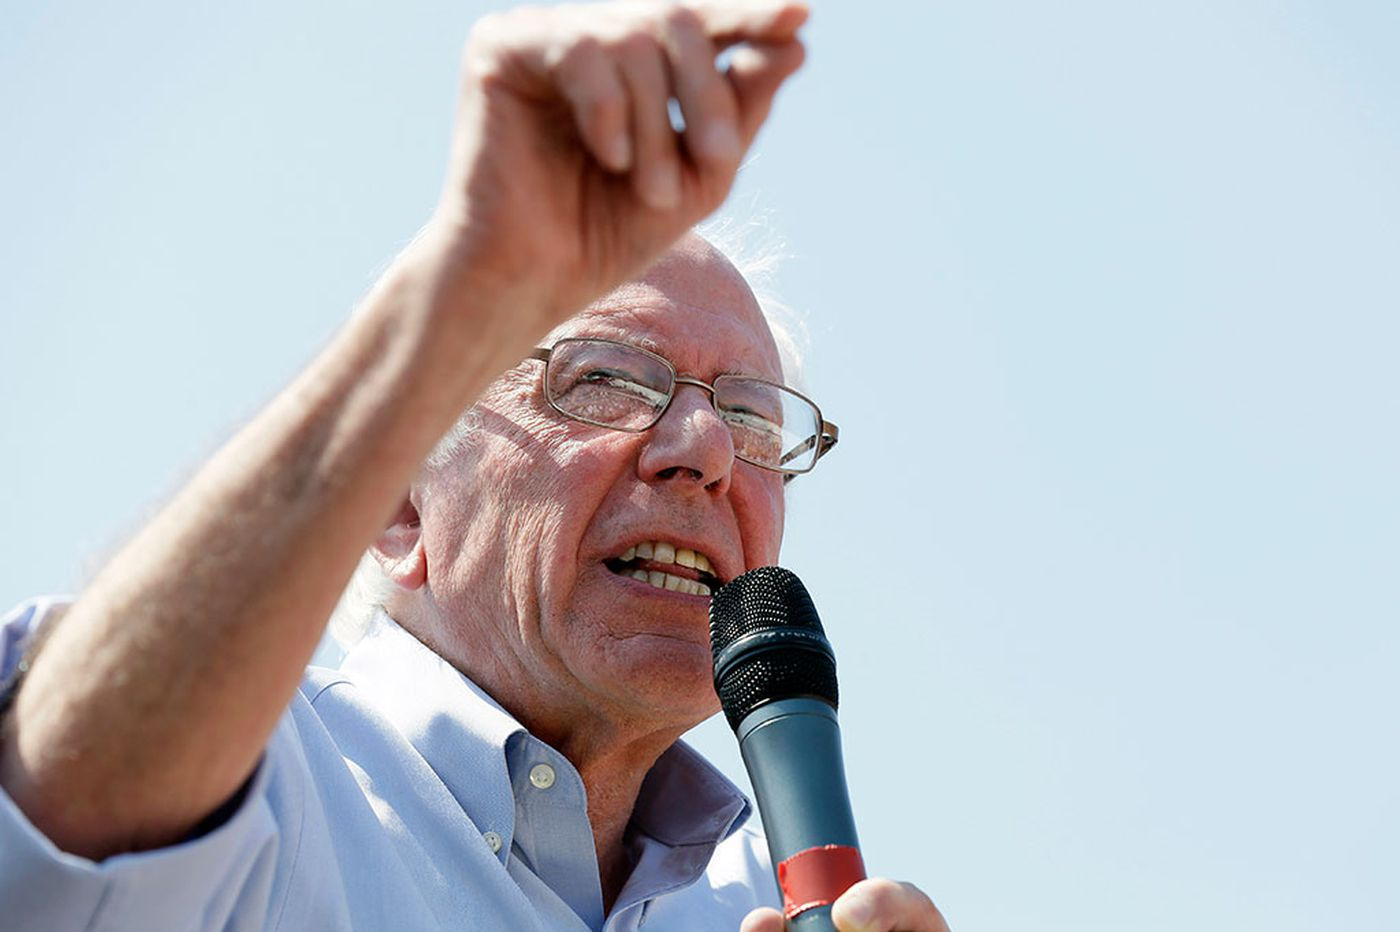 From 'Bernie Who?' to 'Bernie Why Not?'